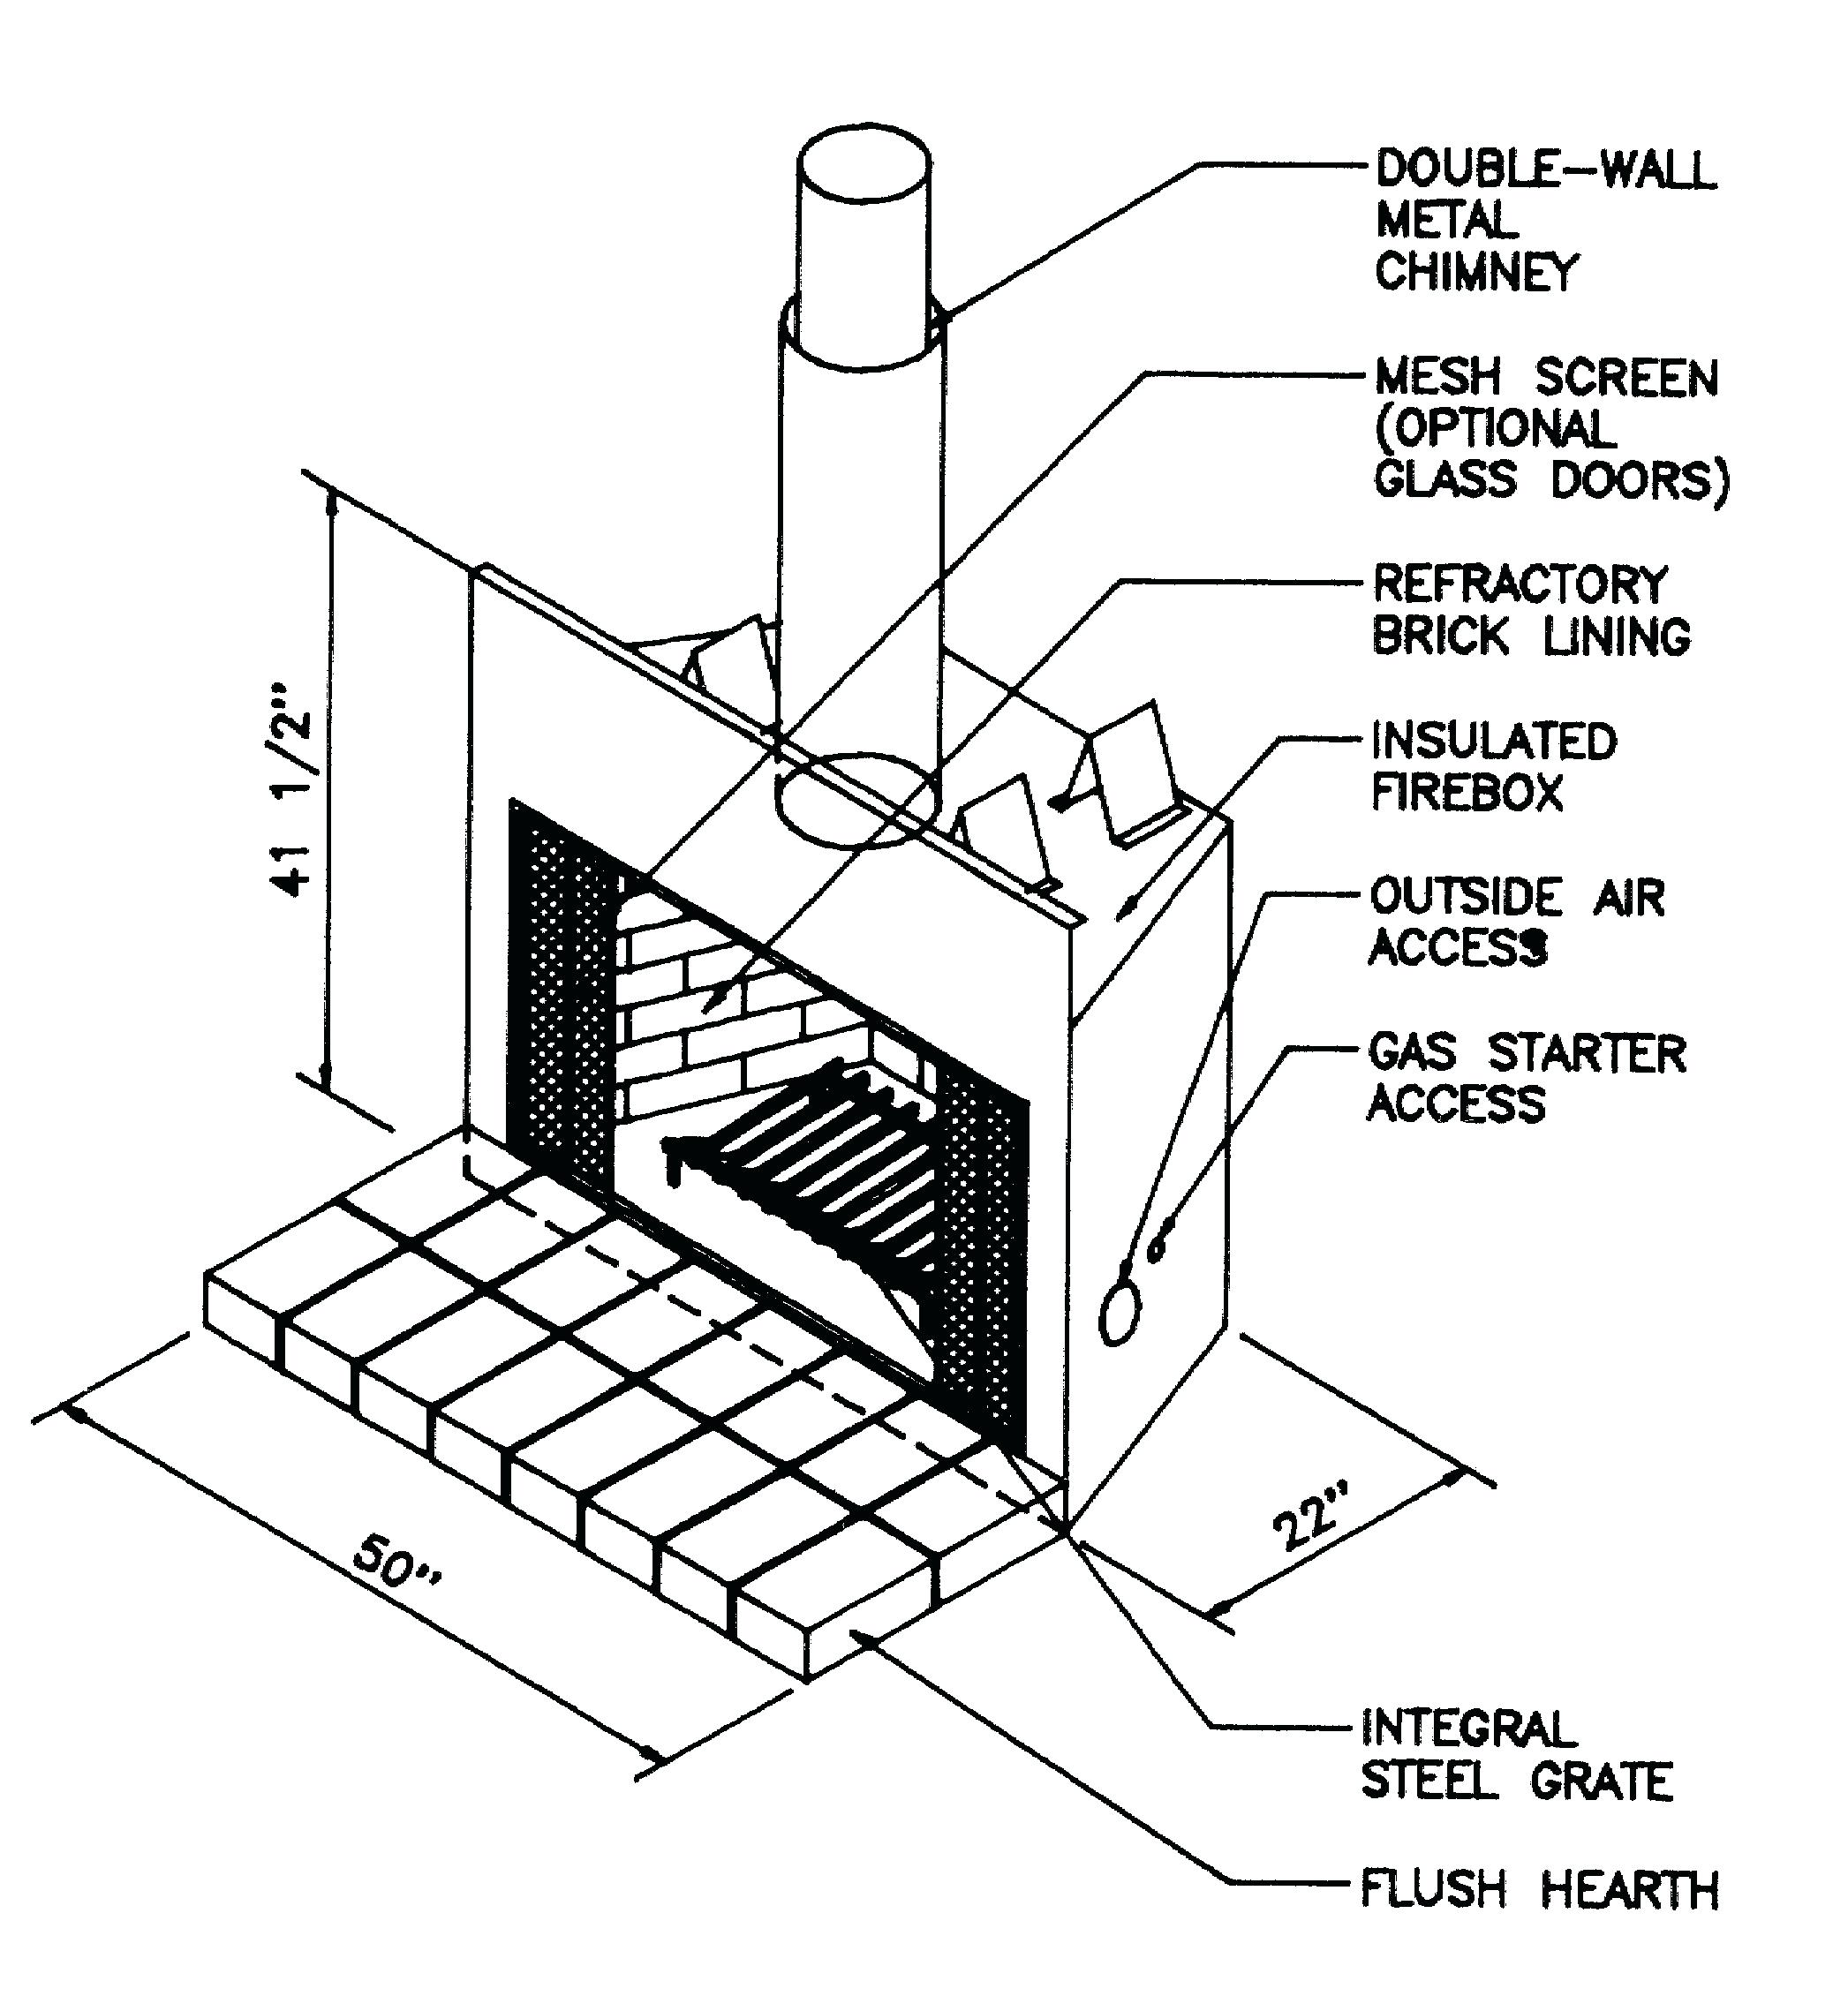 Fireplace Drawing At Getdrawings